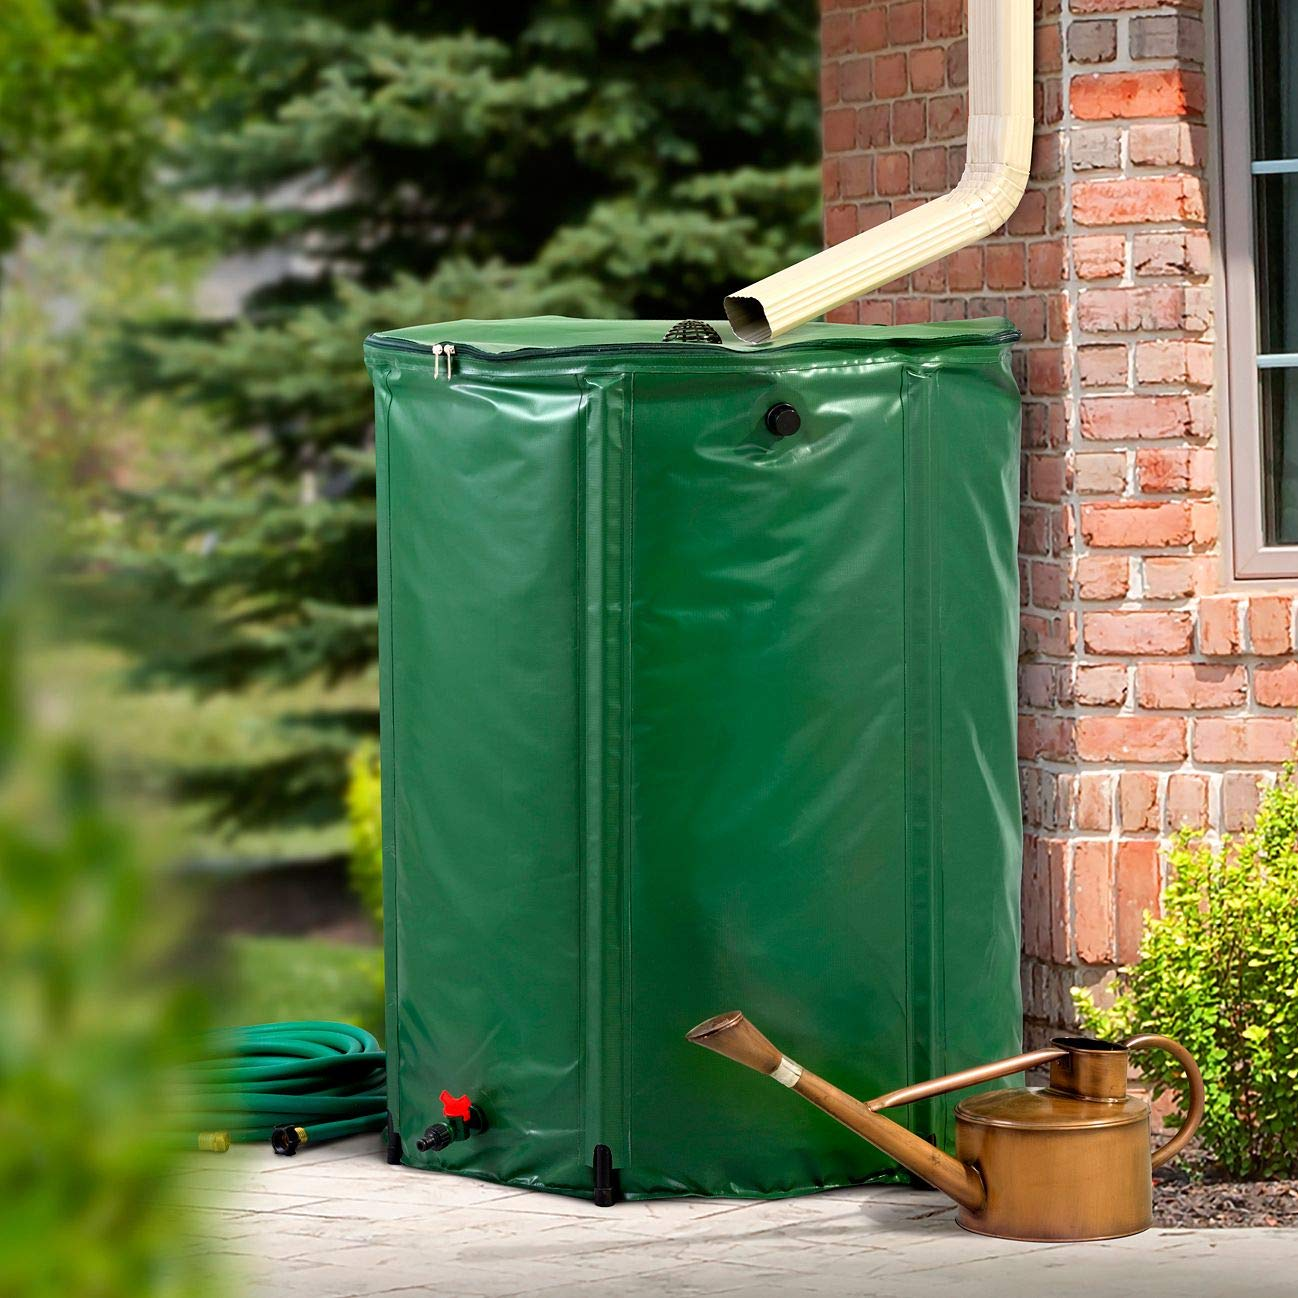 HSN Collapsible Rain Barrel Water Storage - 132 Gallon by HSN